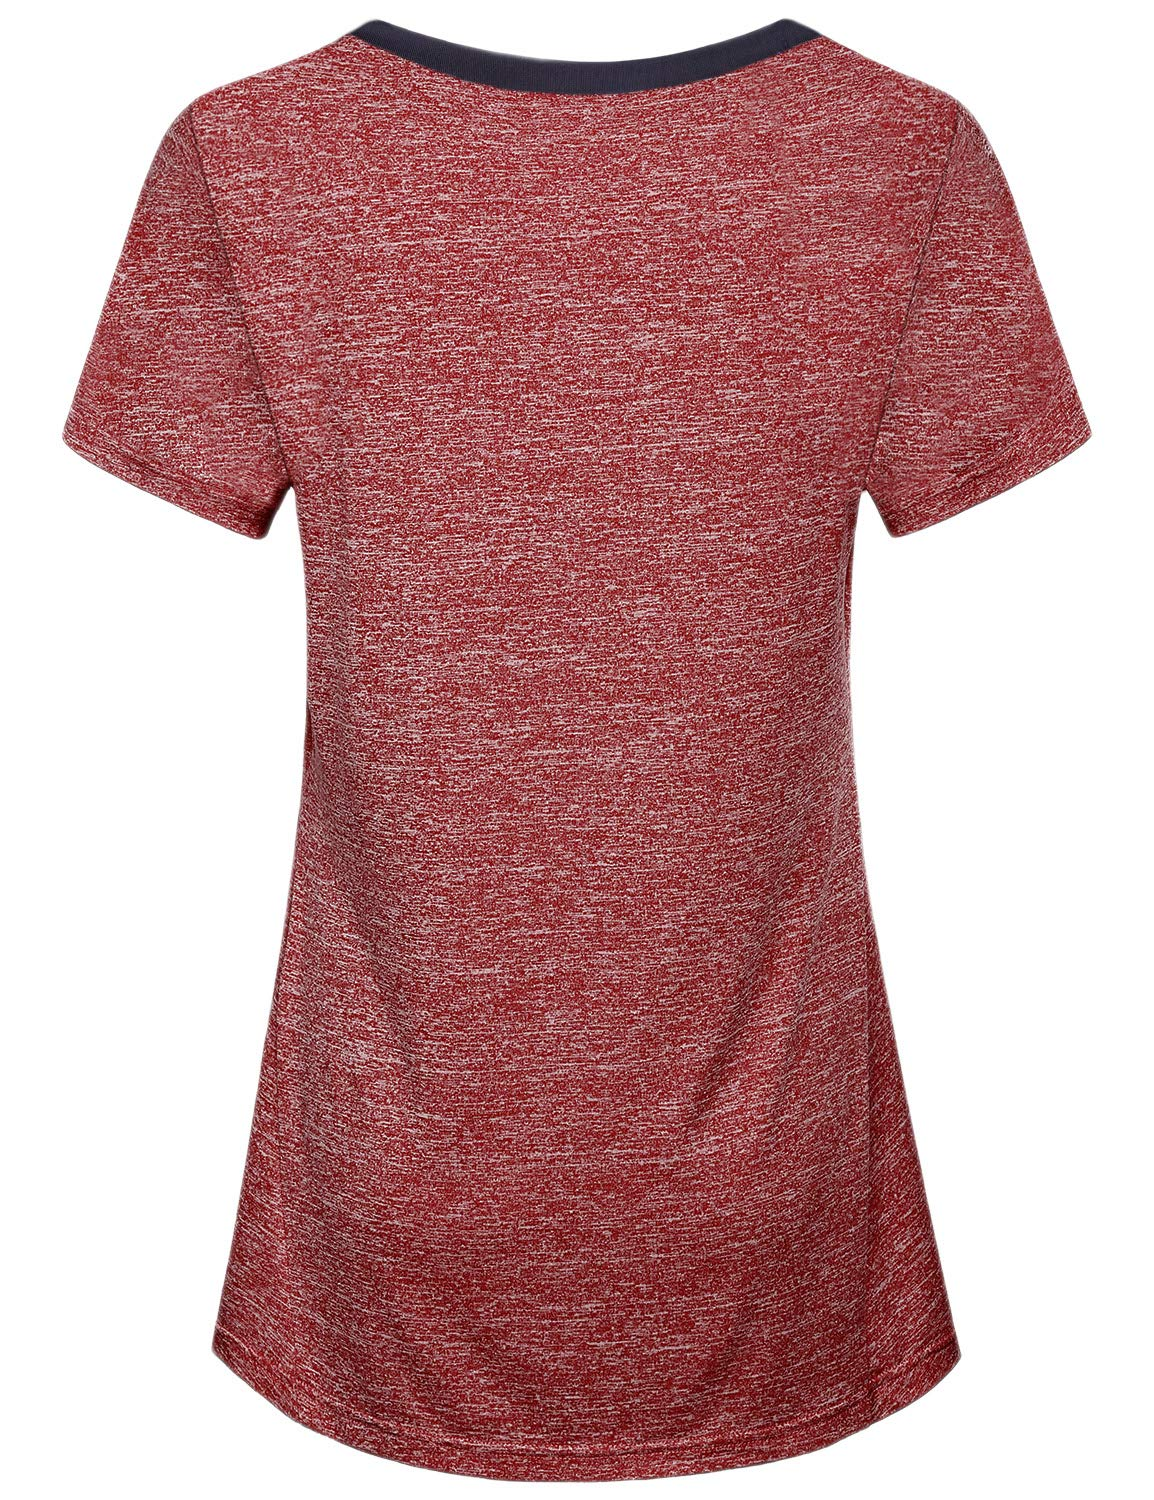 Miusey Yoga Tops for Women, Ladies Short Sleeve Sport Exercise Elastic Petite Activewear Fast Dry Running Solid Color Light Weight Cool Relaxing Wearing Wine M by Miusey (Image #2)